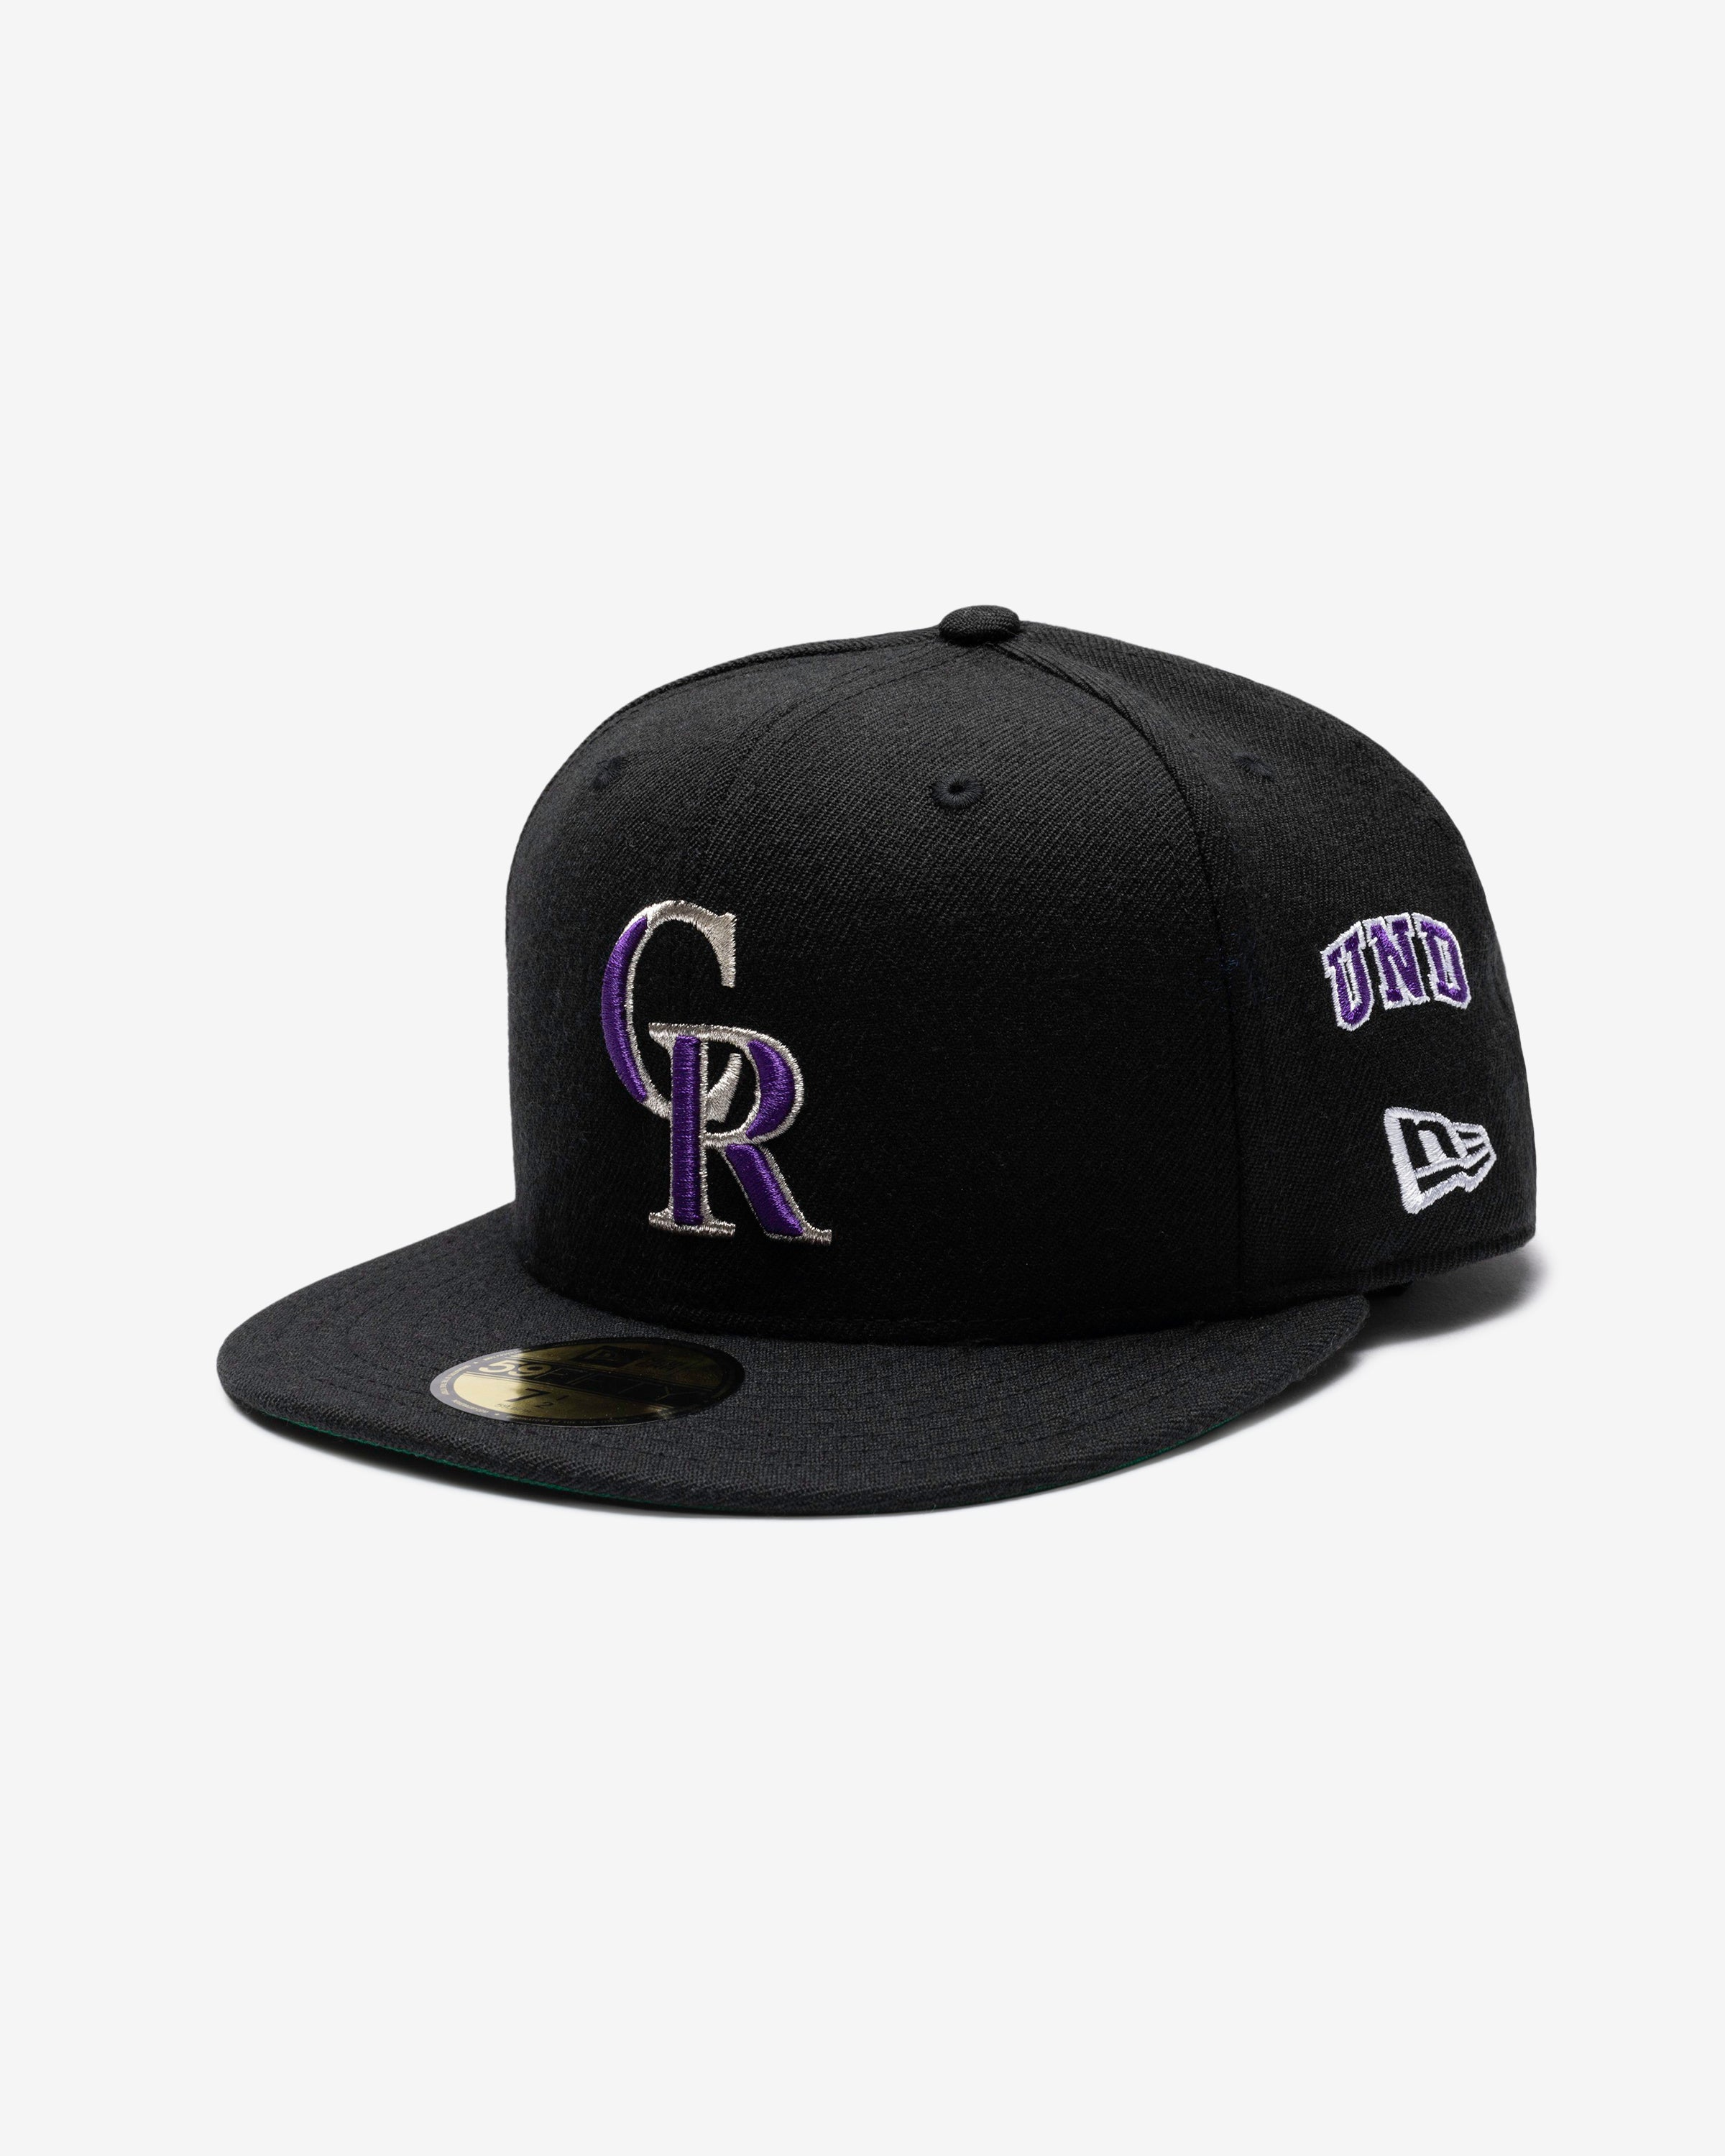 UNDEFEATED X NE X MLB FITTED - COLORADO ROCKIES